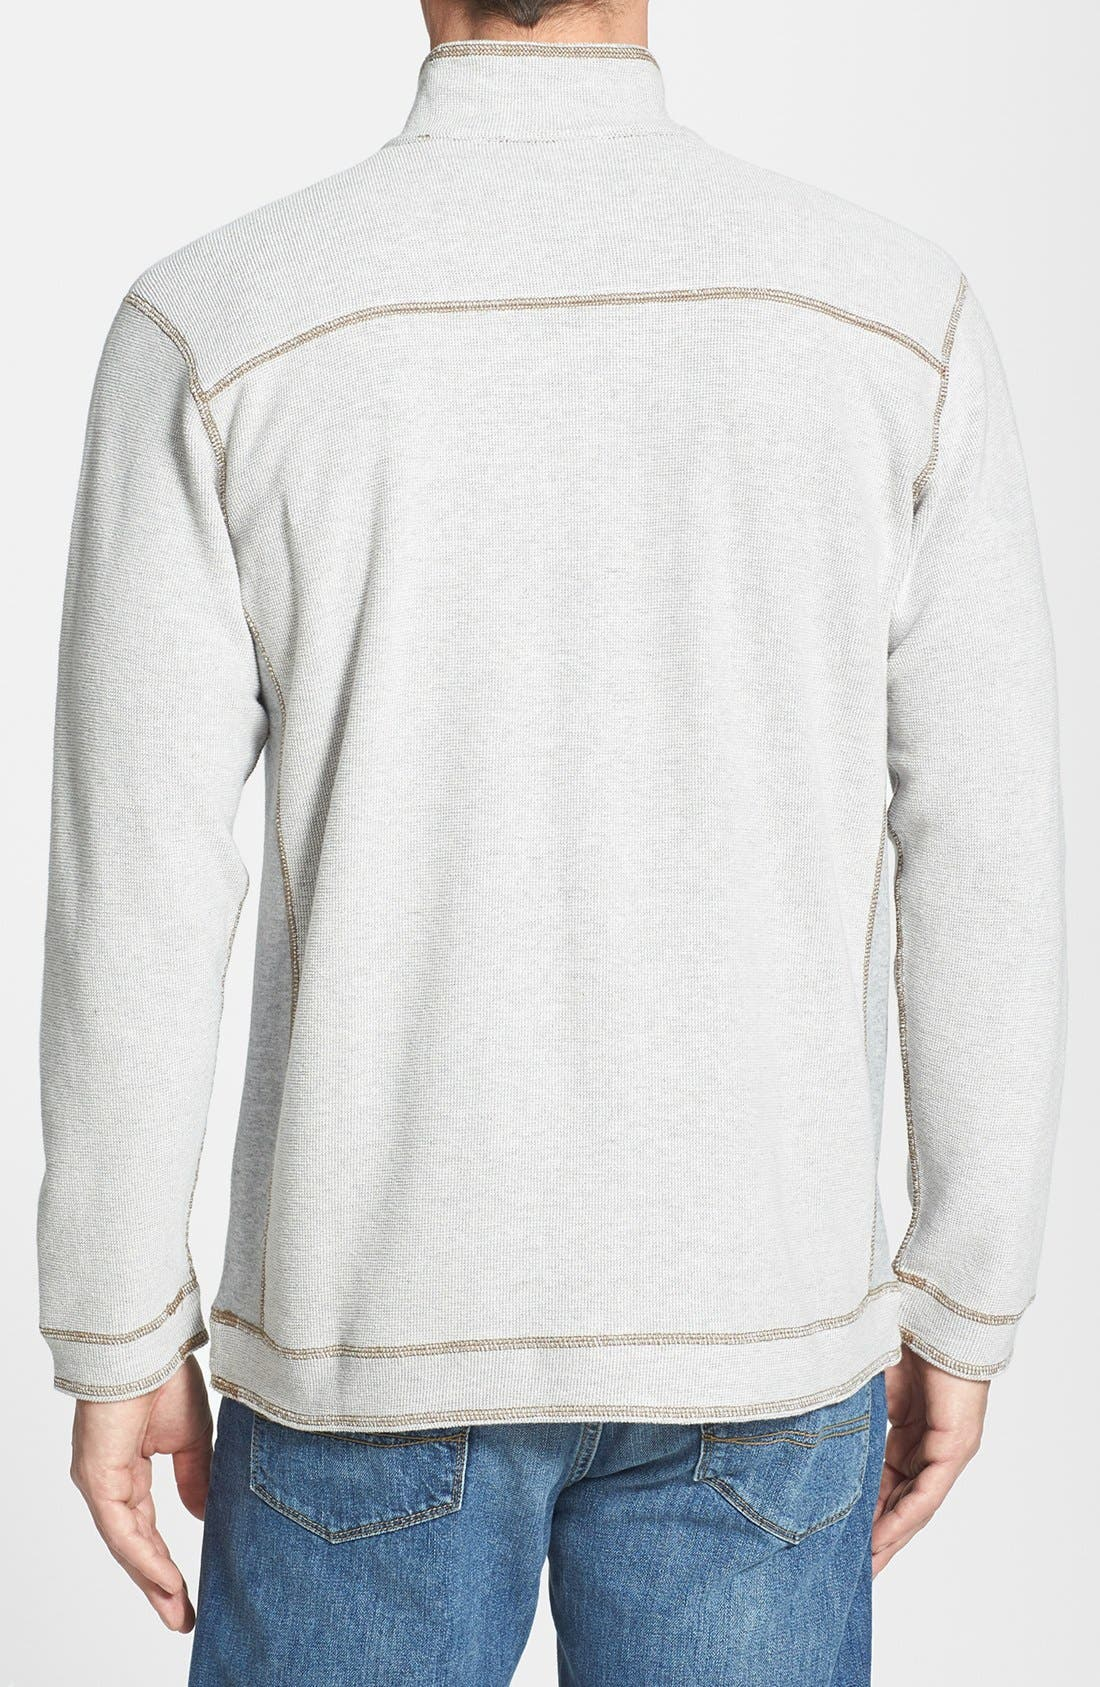 Alternate Image 3  - Tommy Bahama Denim 'Grand Isles' Reversible Half Zip Sweatshirt